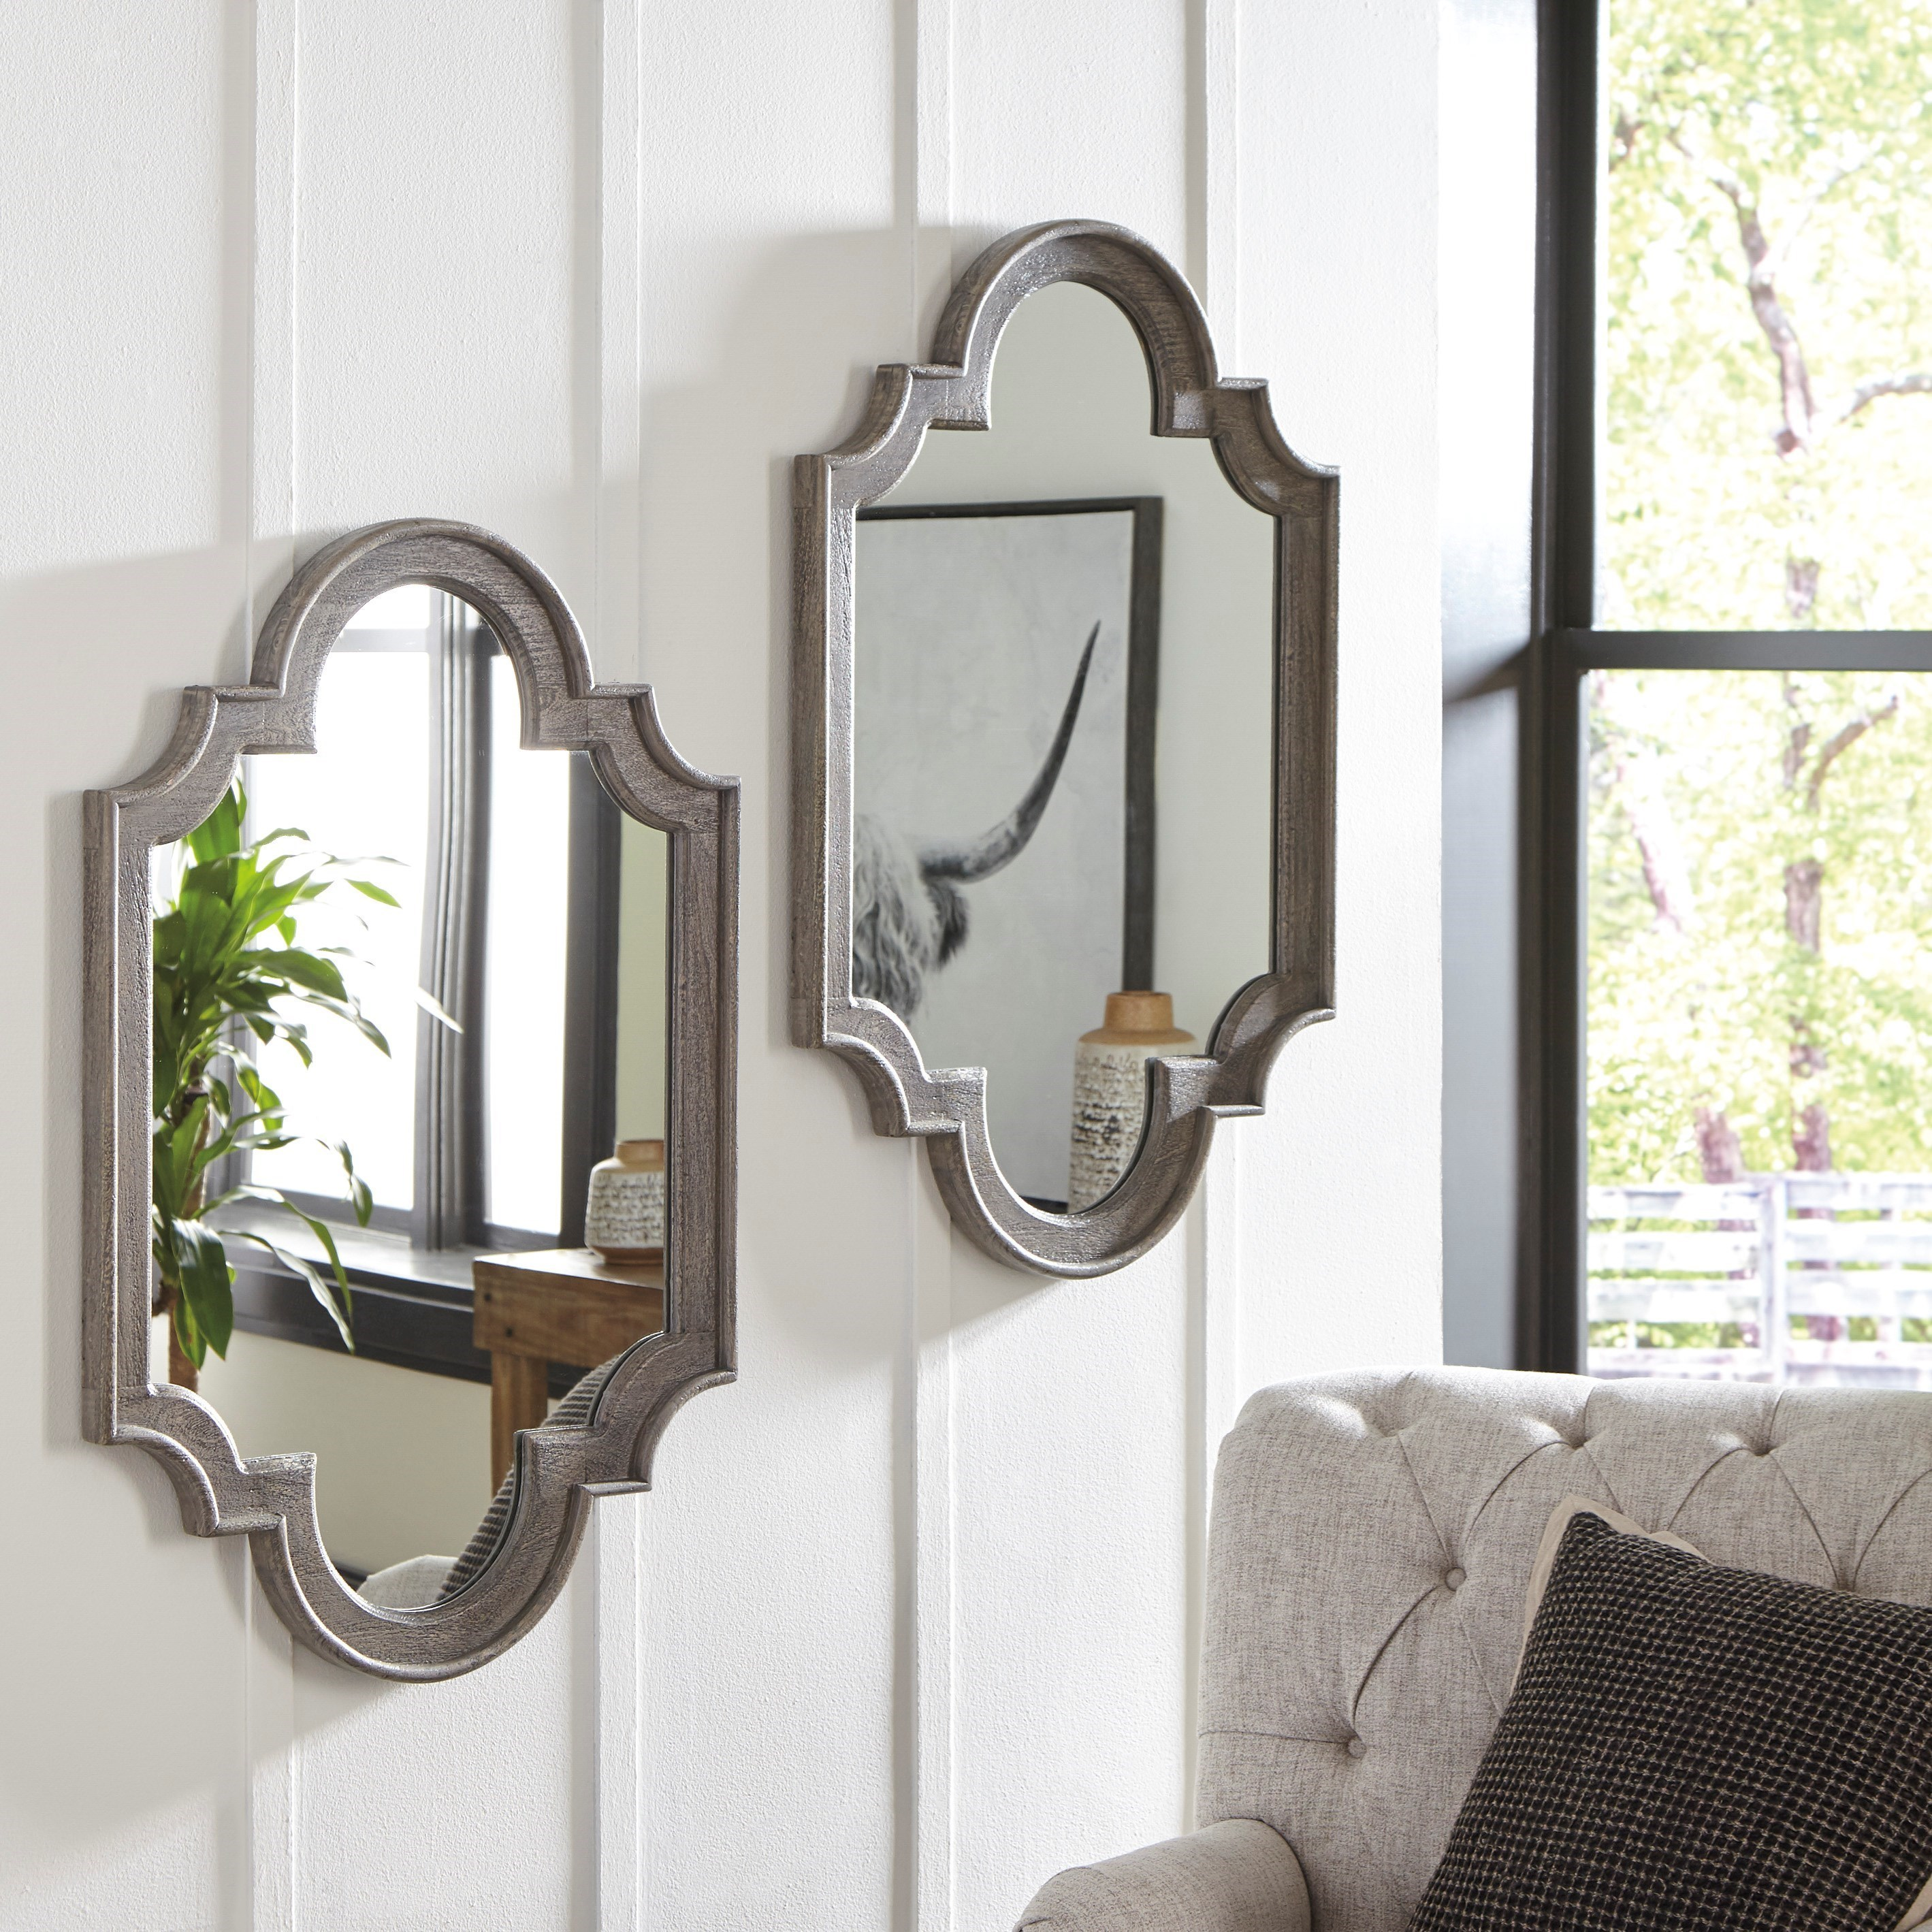 Signature Design By Ashley Accent Mirrors Williamette Antique Gray Accent Mirror Royal Furniture Wall Mirrors